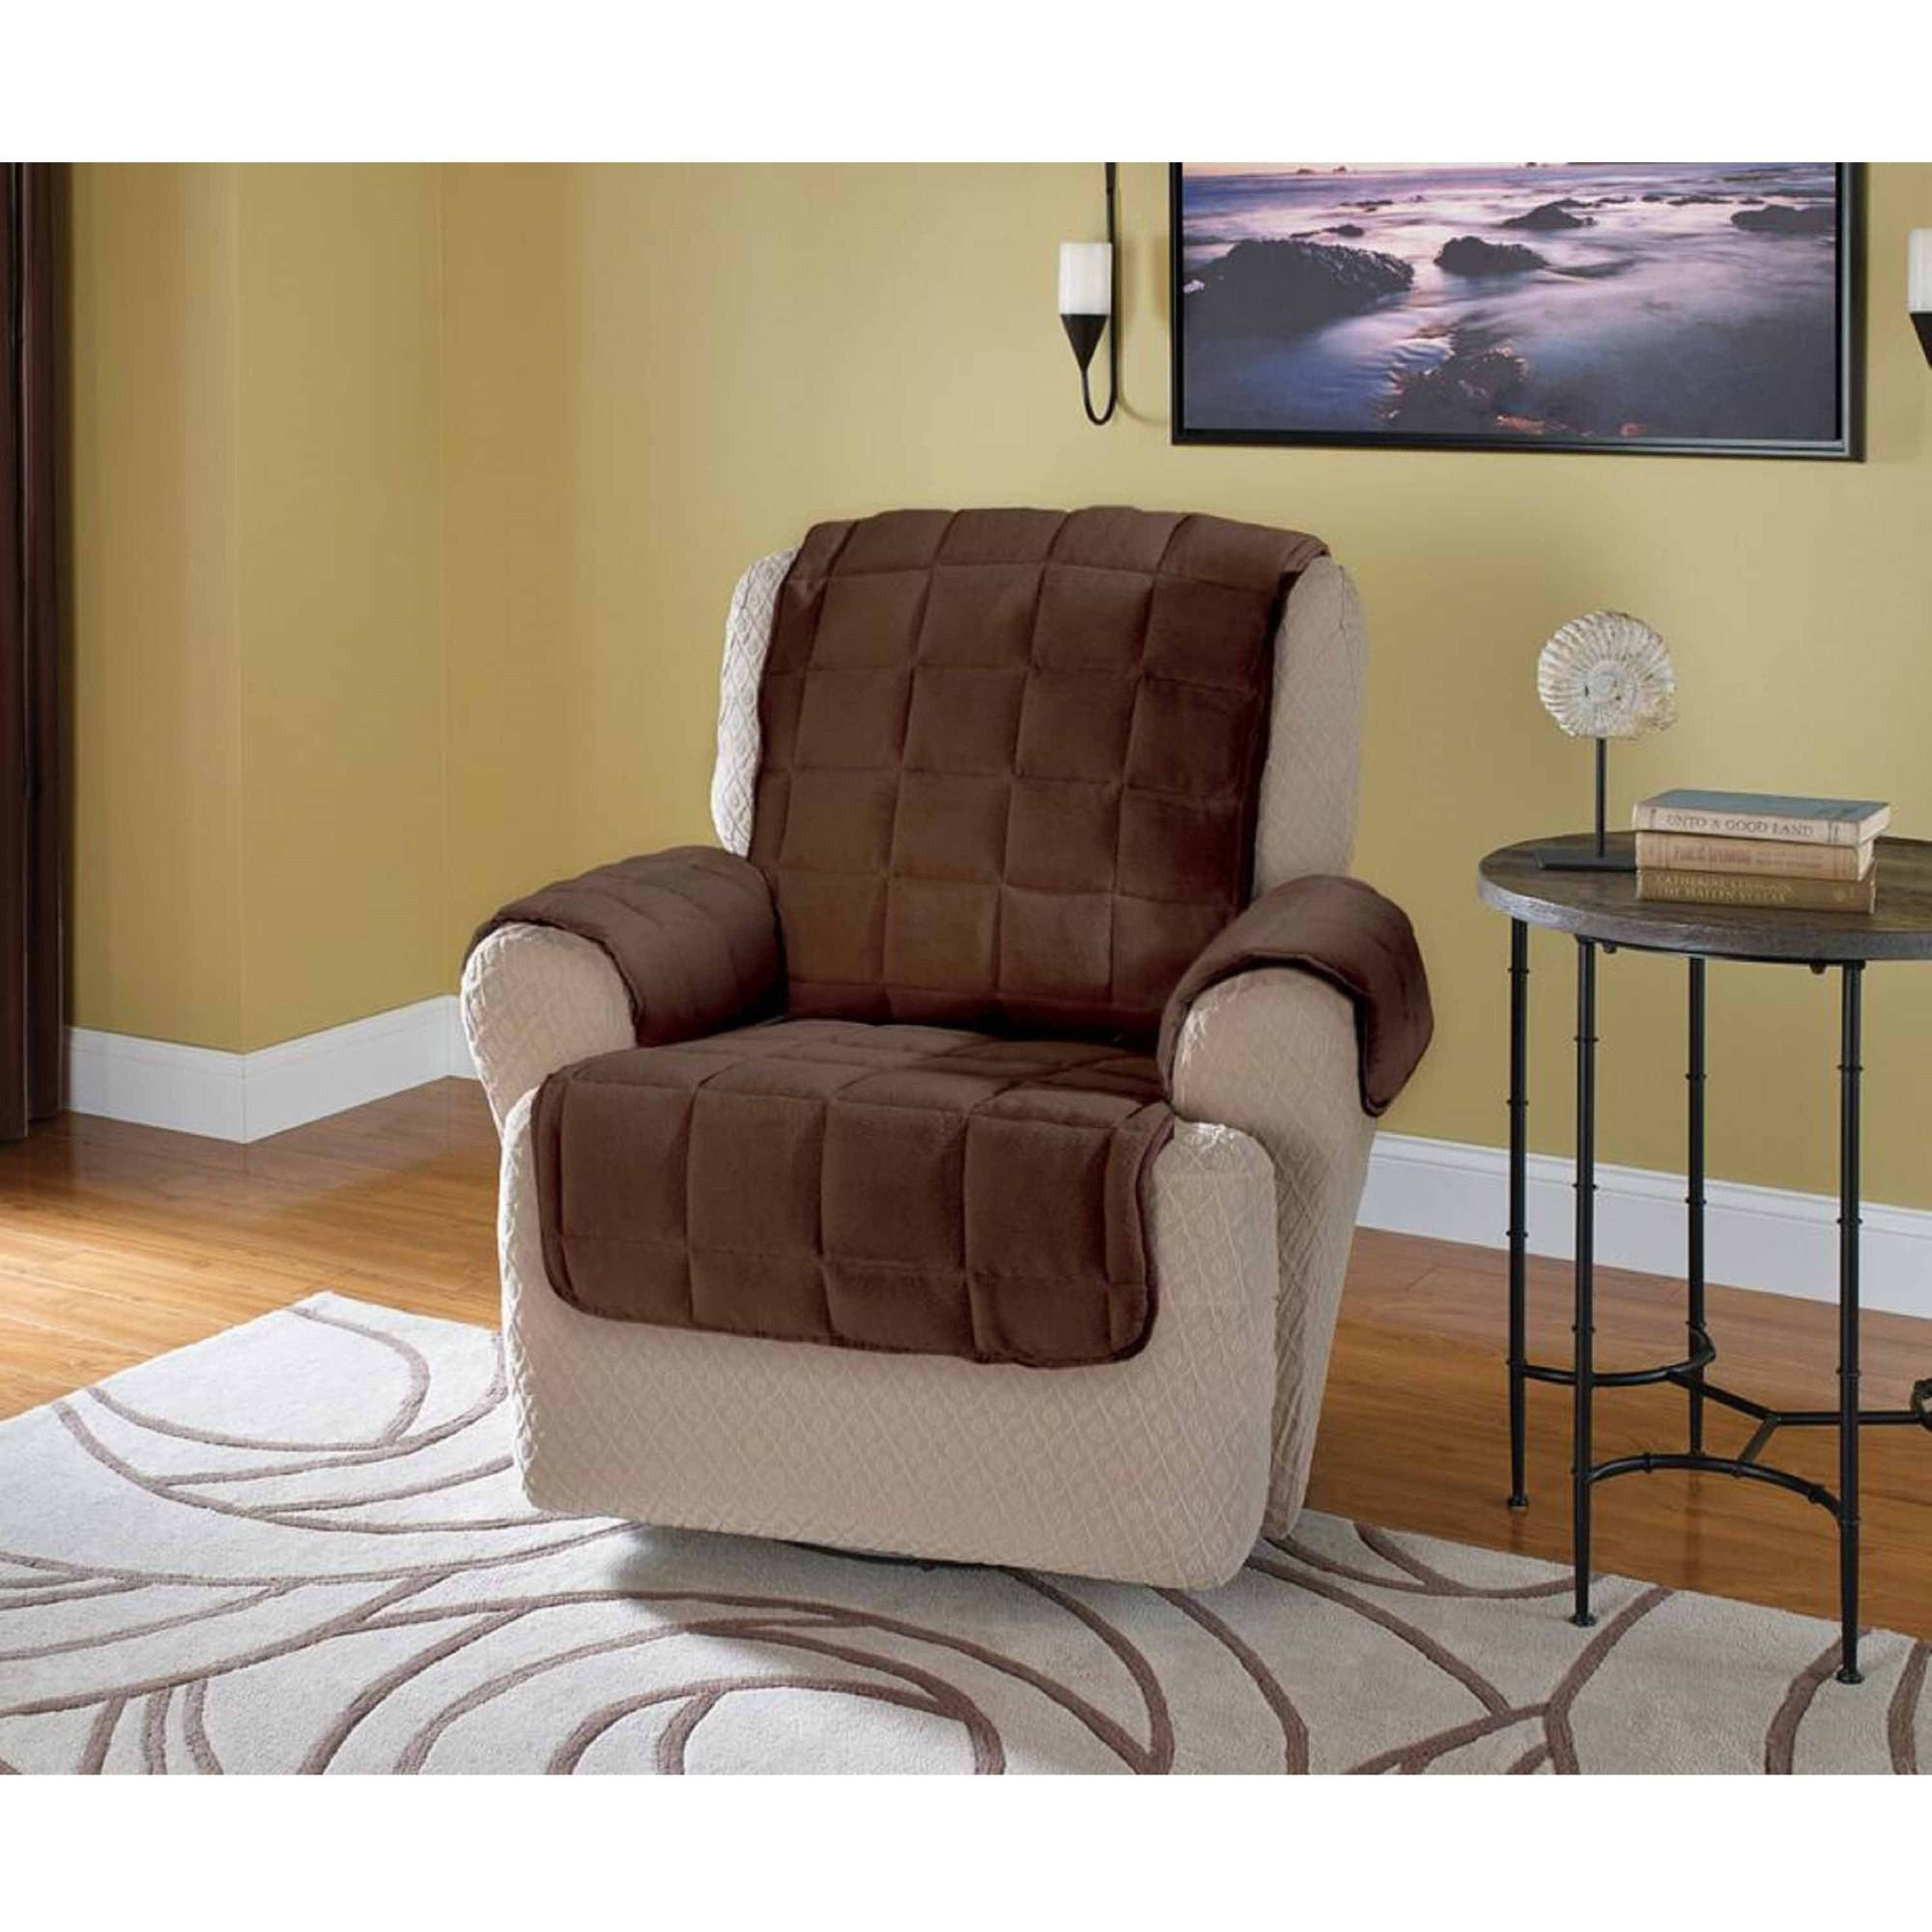 Innovative Textile Solutions Plush Recliner or Wing Chair Protector